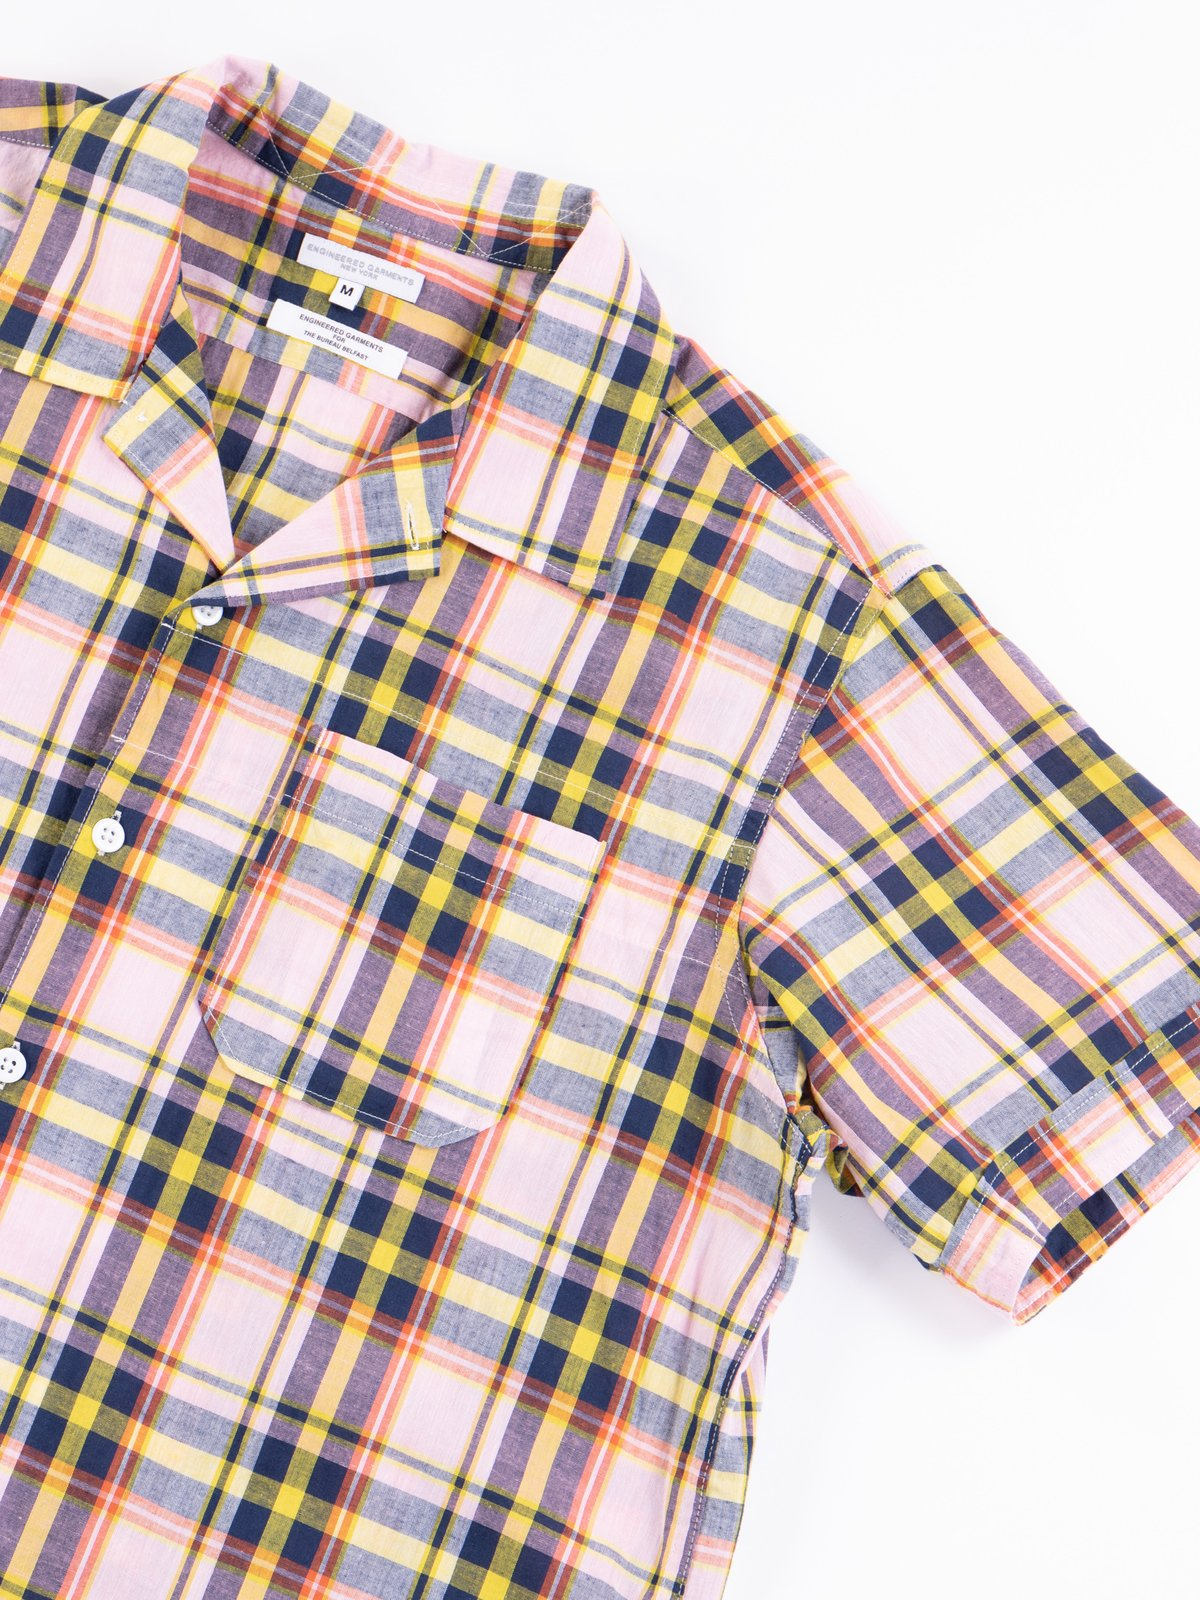 Pink/Yellow CL Madras Plaid Camp Shirt - Image 5